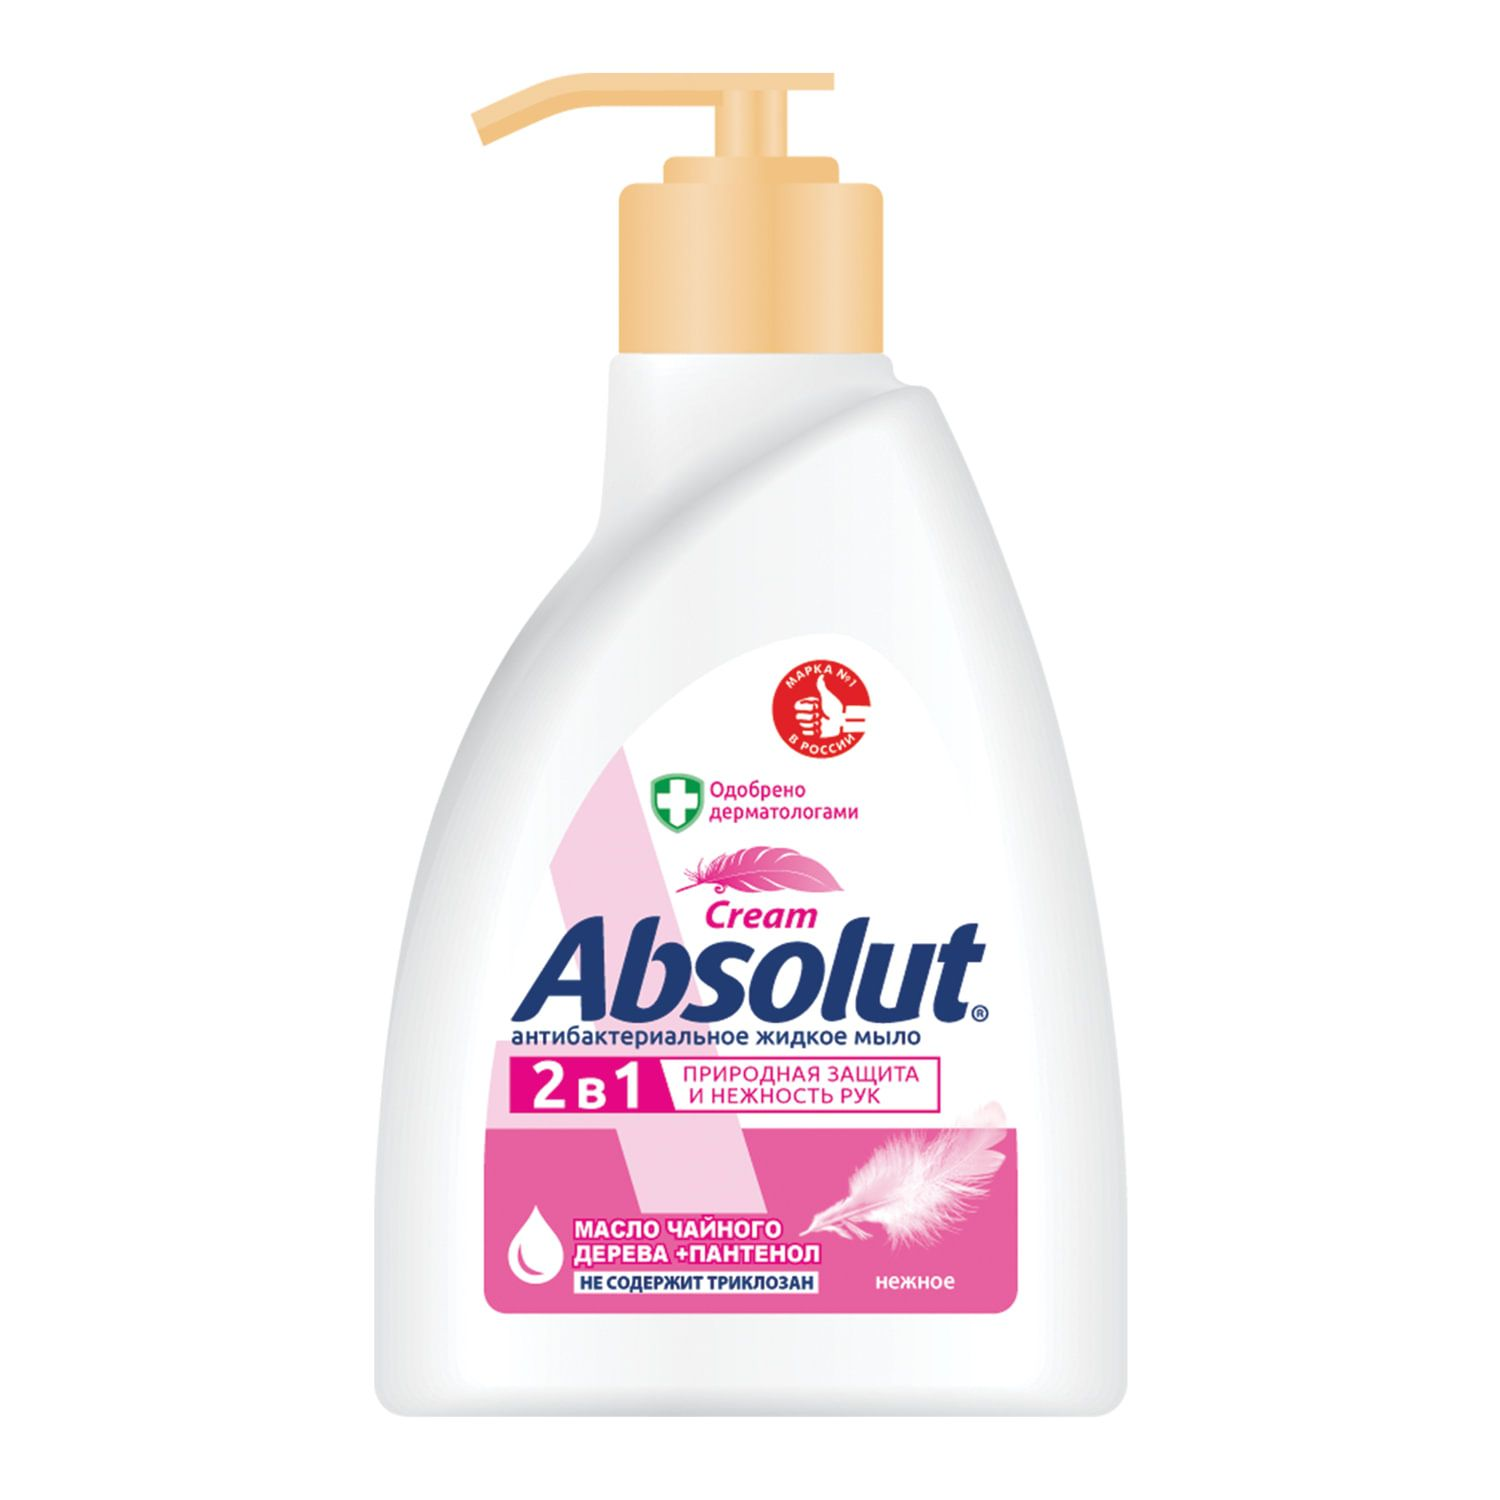 "Liquid soap 250 ml, ABSOLUT (the absolute), ""Soft"", anti-bacterial dispenser"